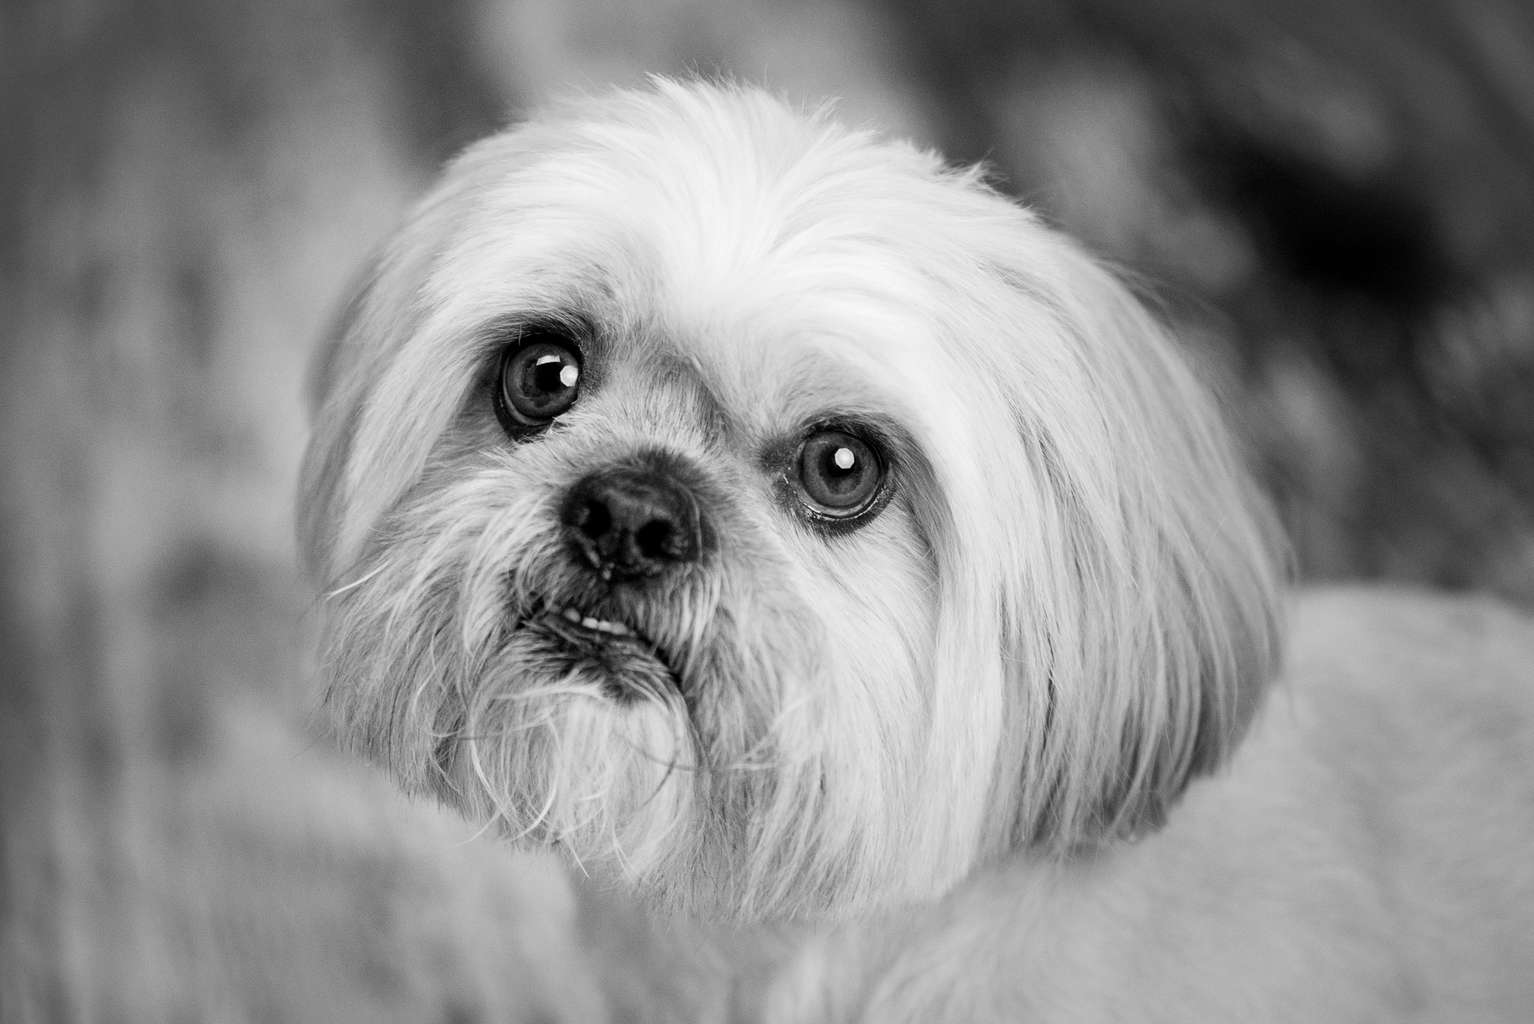 Cute Dog Portrait, bournemouth photo studio